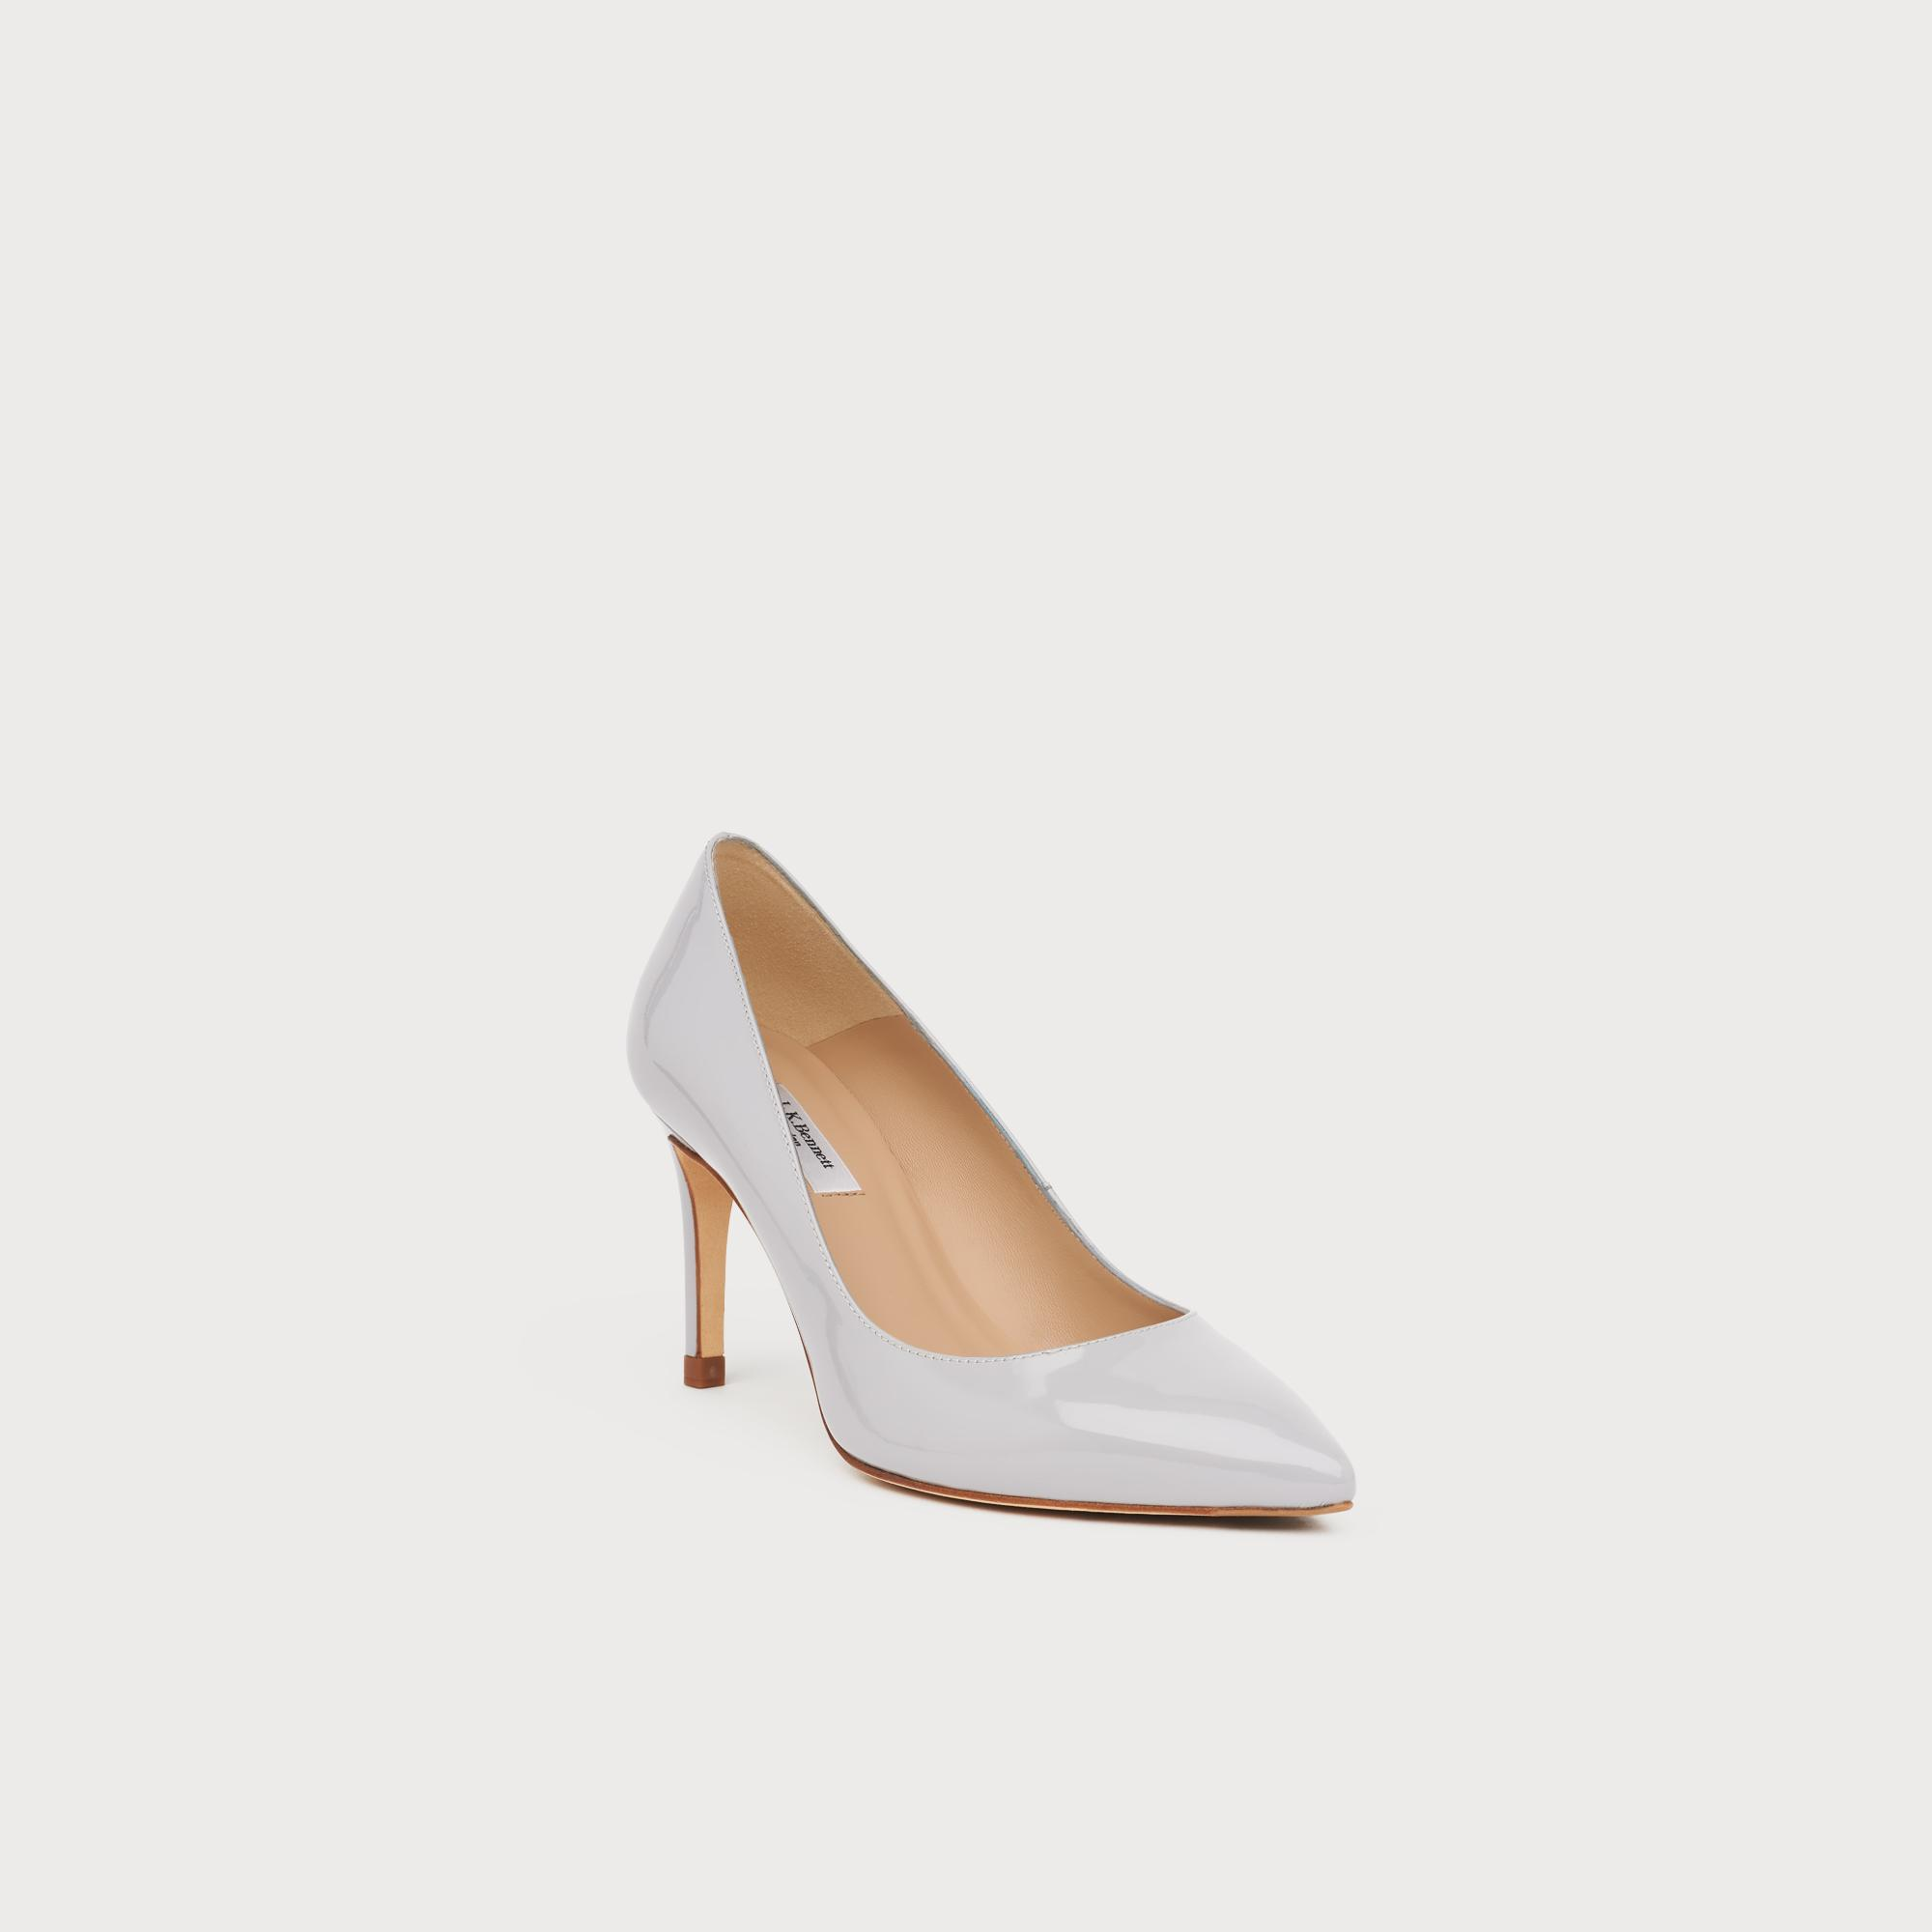 2bae635fe30 Floret Grey Patent Pointed Toe Courts